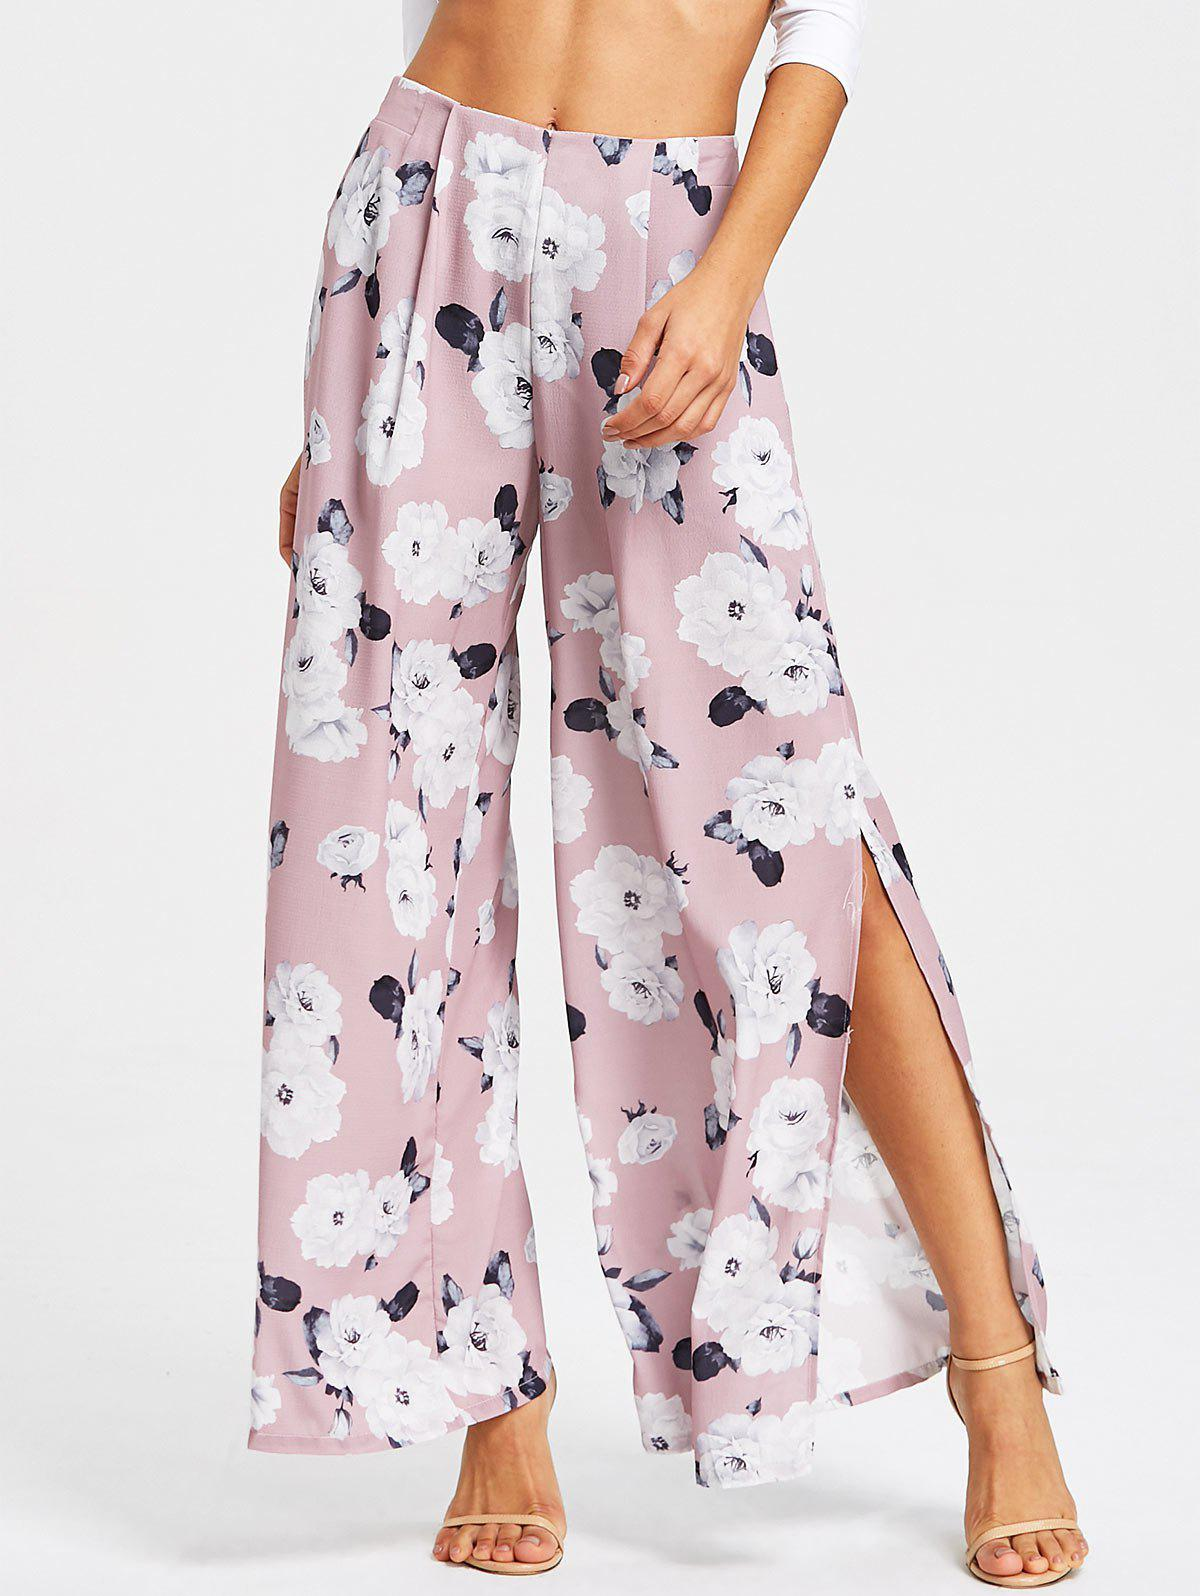 High Slit Floral Print Wide Leg Pants - PALE PINKISH GREY XL